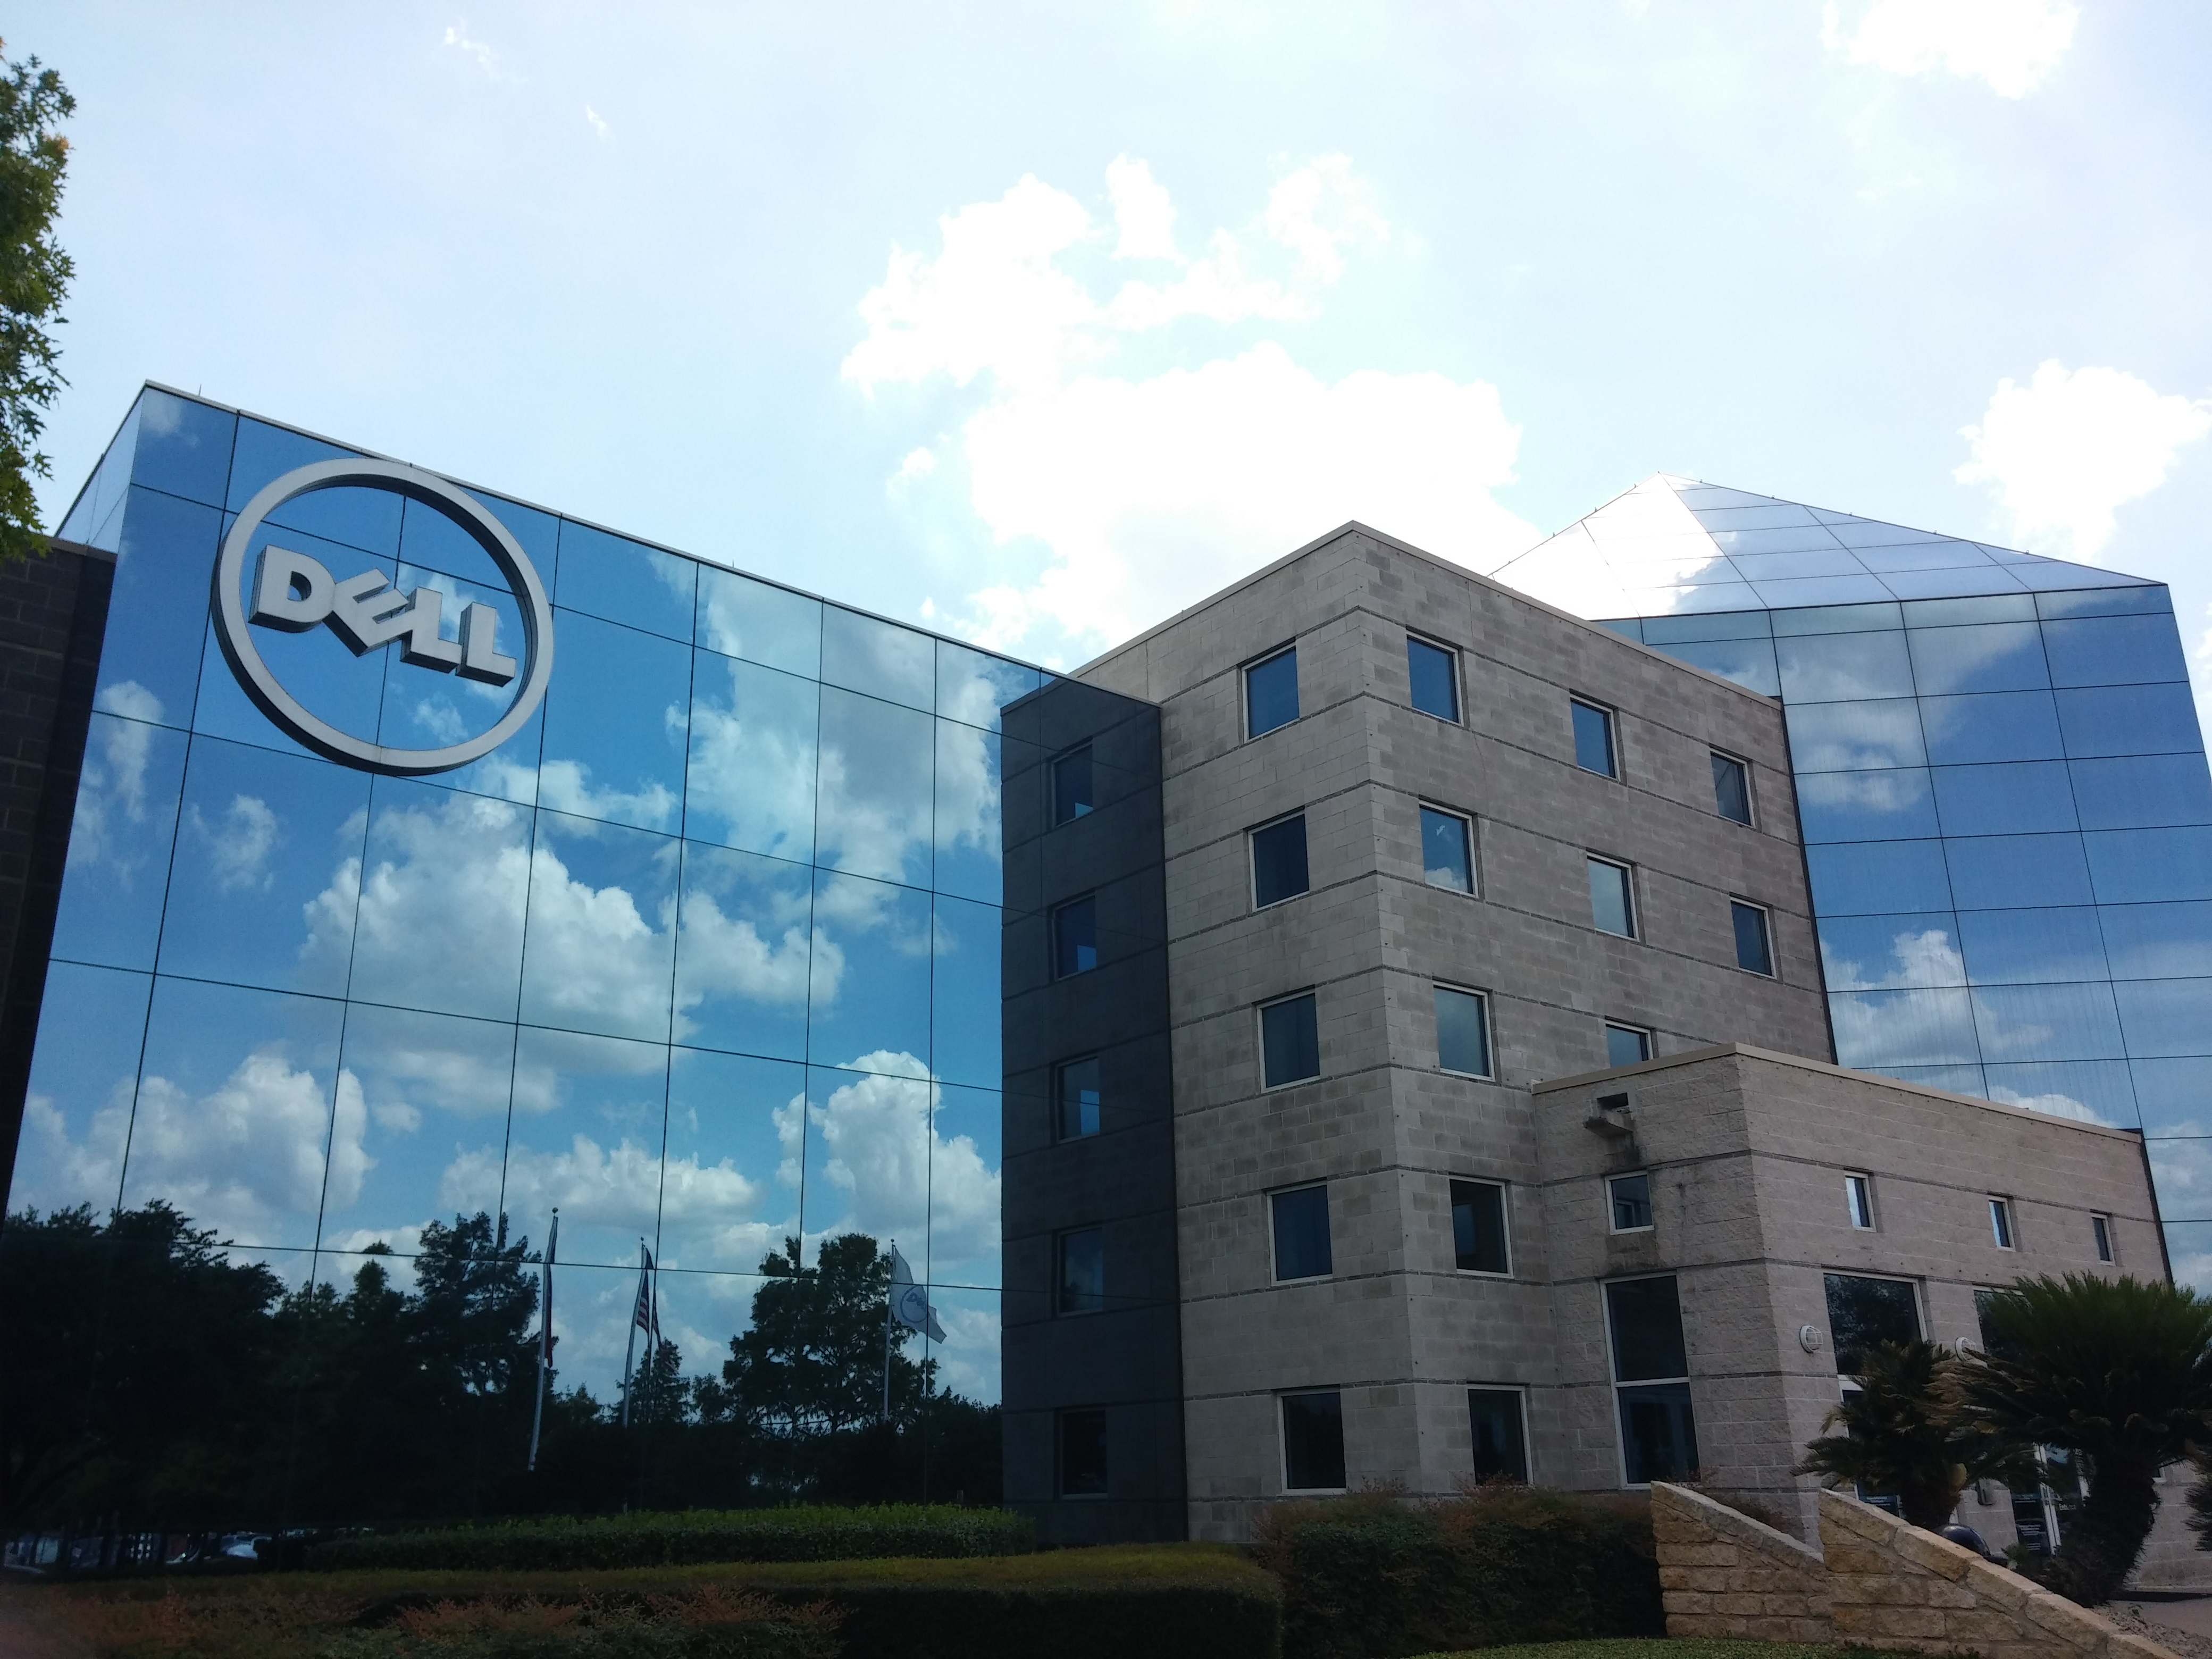 Dell narrowly beats revenue forecast, but enterprise business continues to struggle - SiliconANGLE